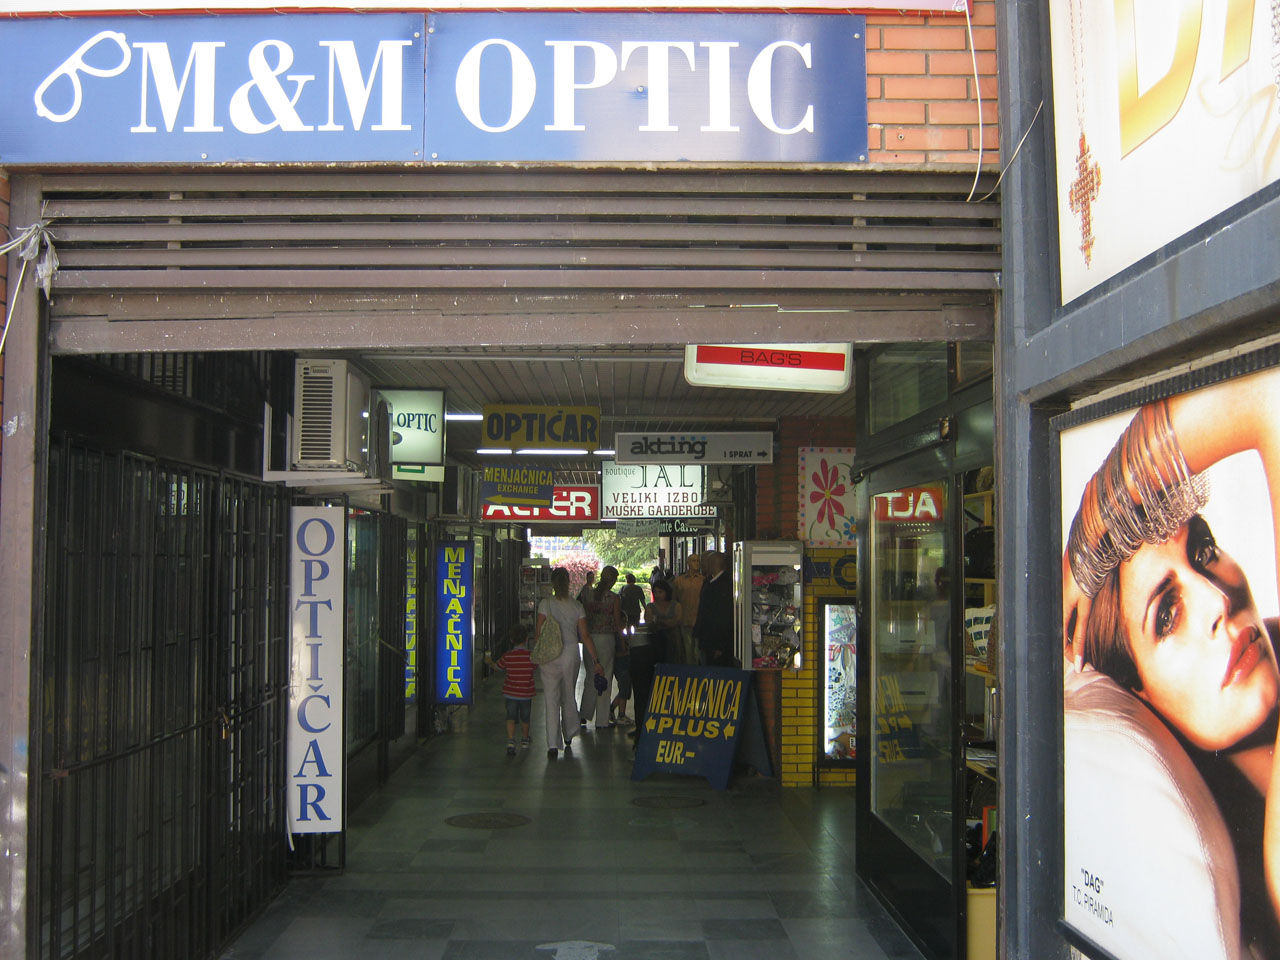 M&M OPTIC Optics Beograd